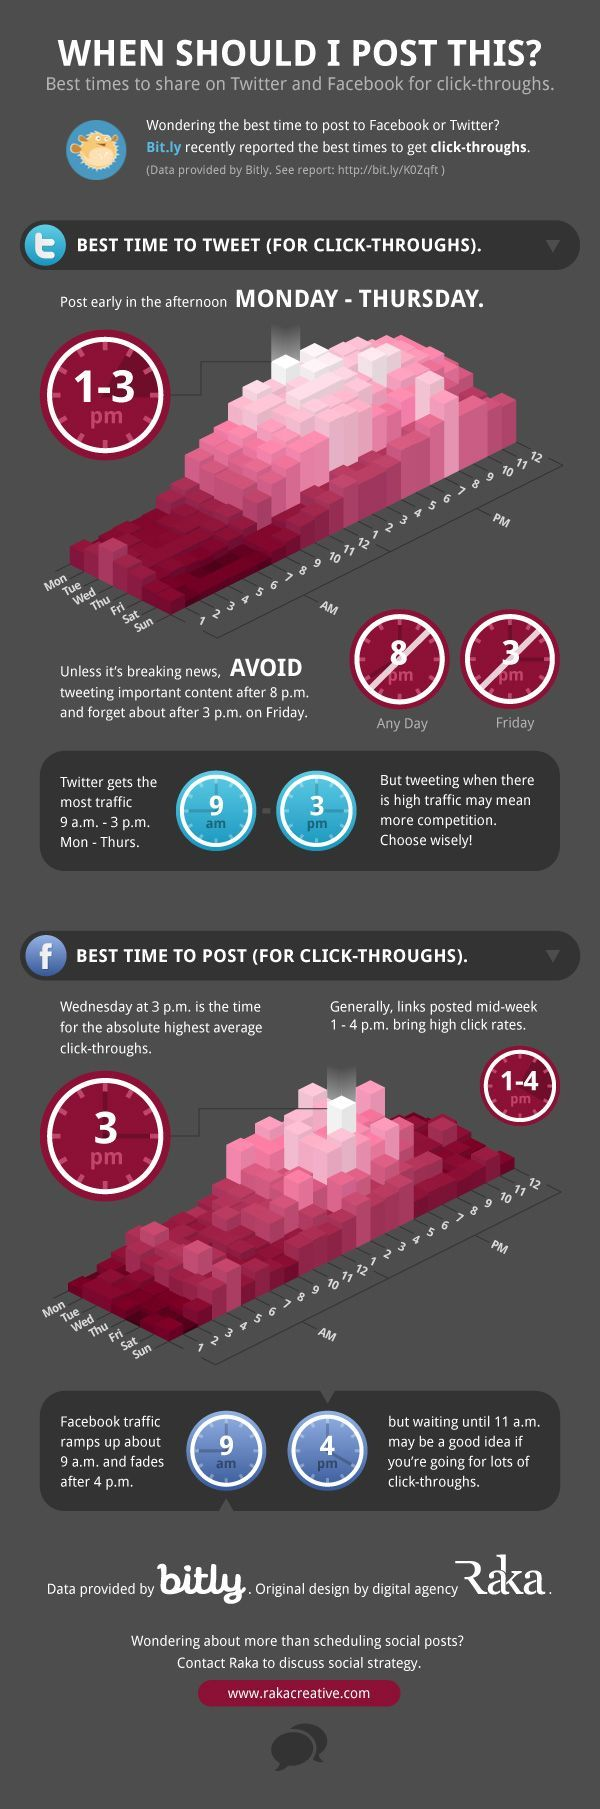 Ever wonder what the best time to tweet/post a status update is? Well wonder no more!